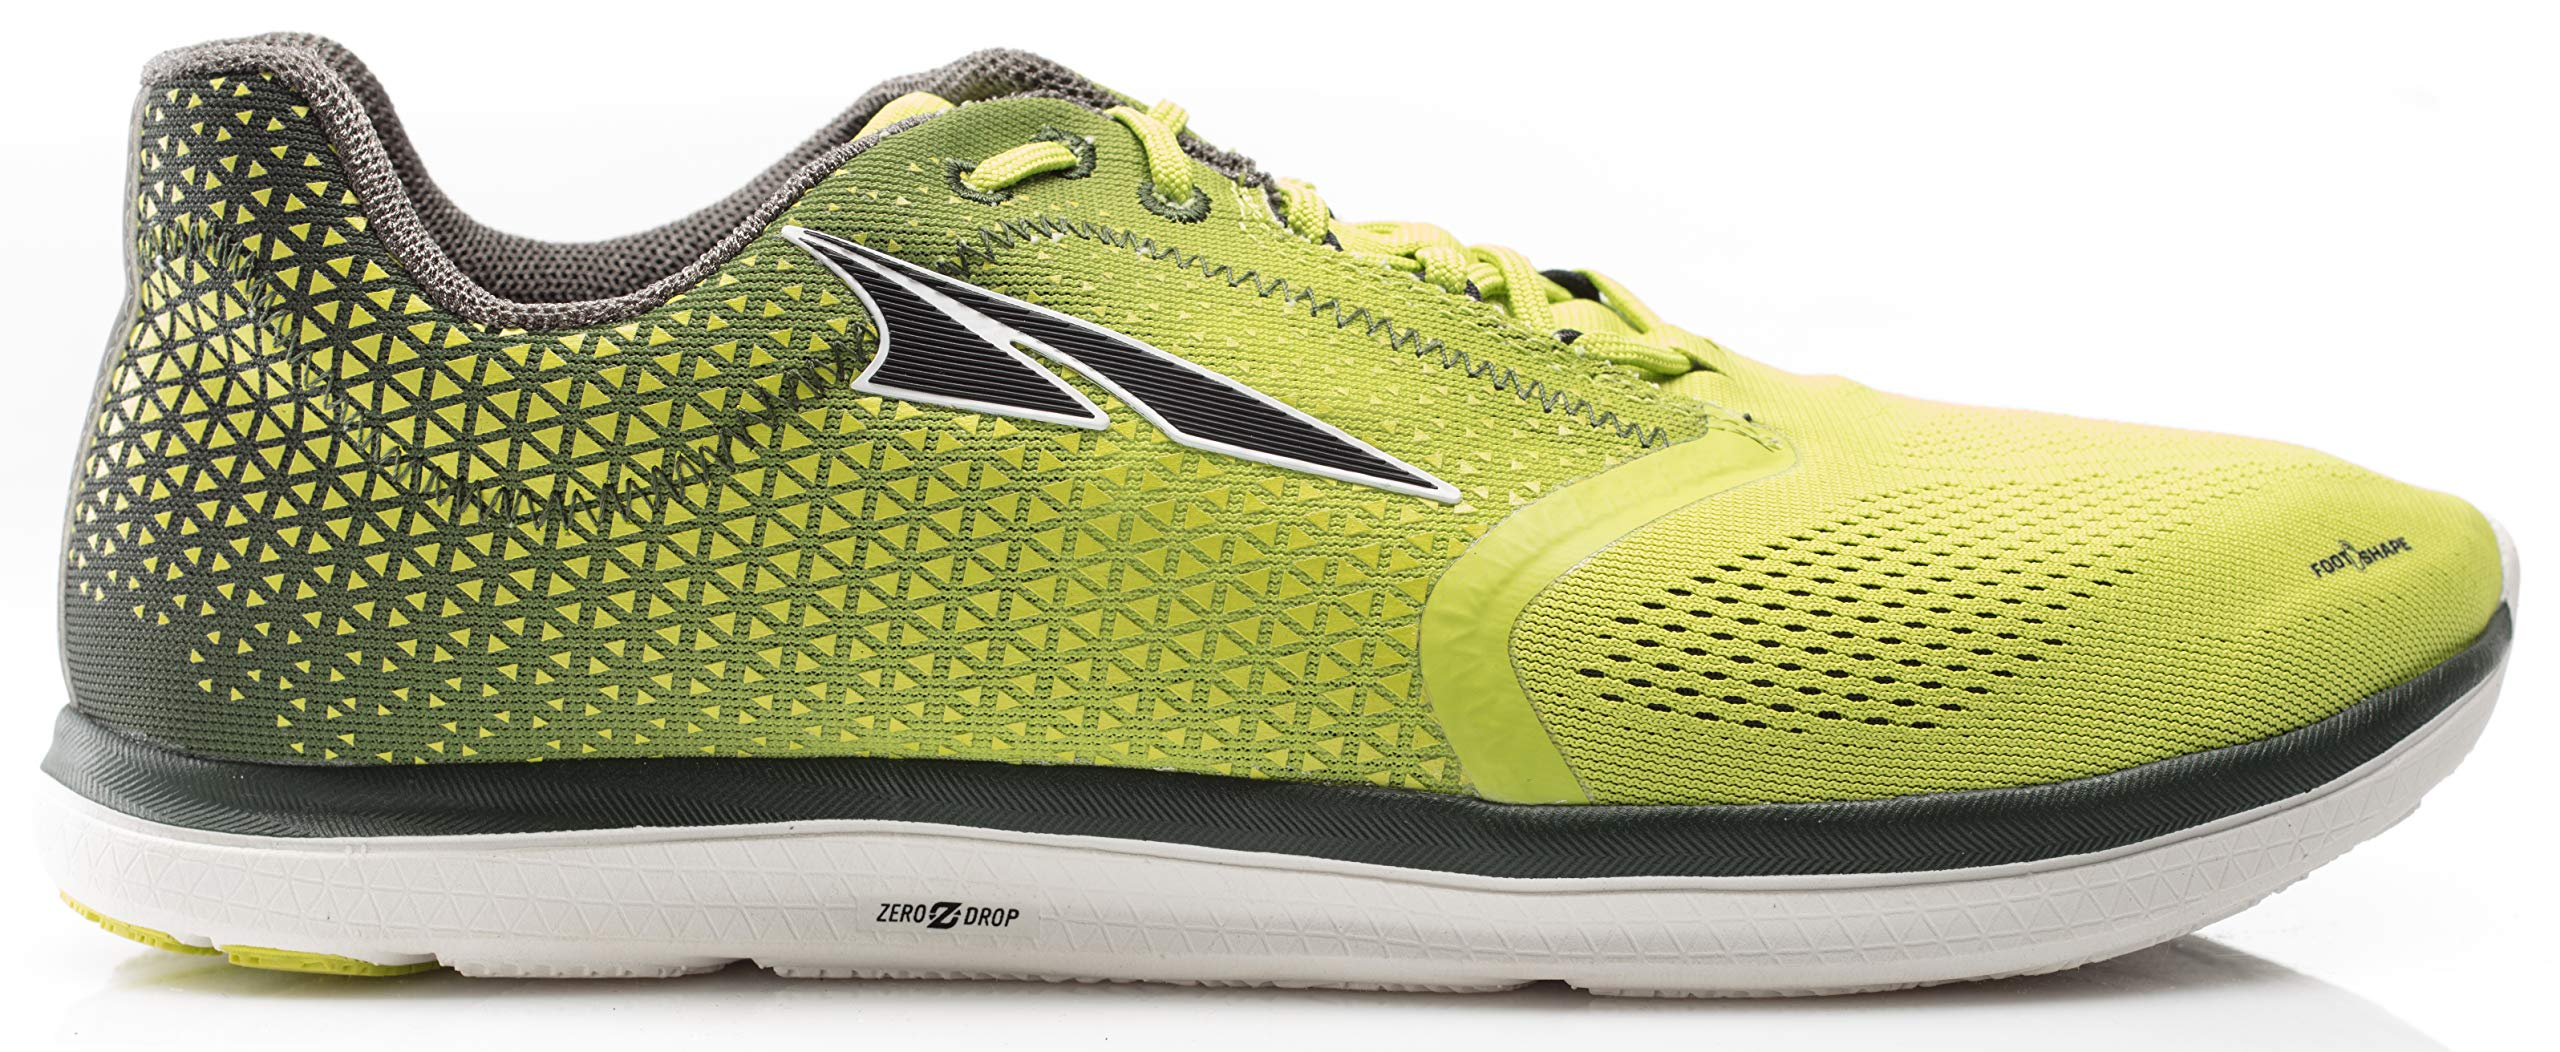 Altra AFM1836P Men's Solstice Road Running Shoe, Lime - 8 M US by Altra (Image #1)